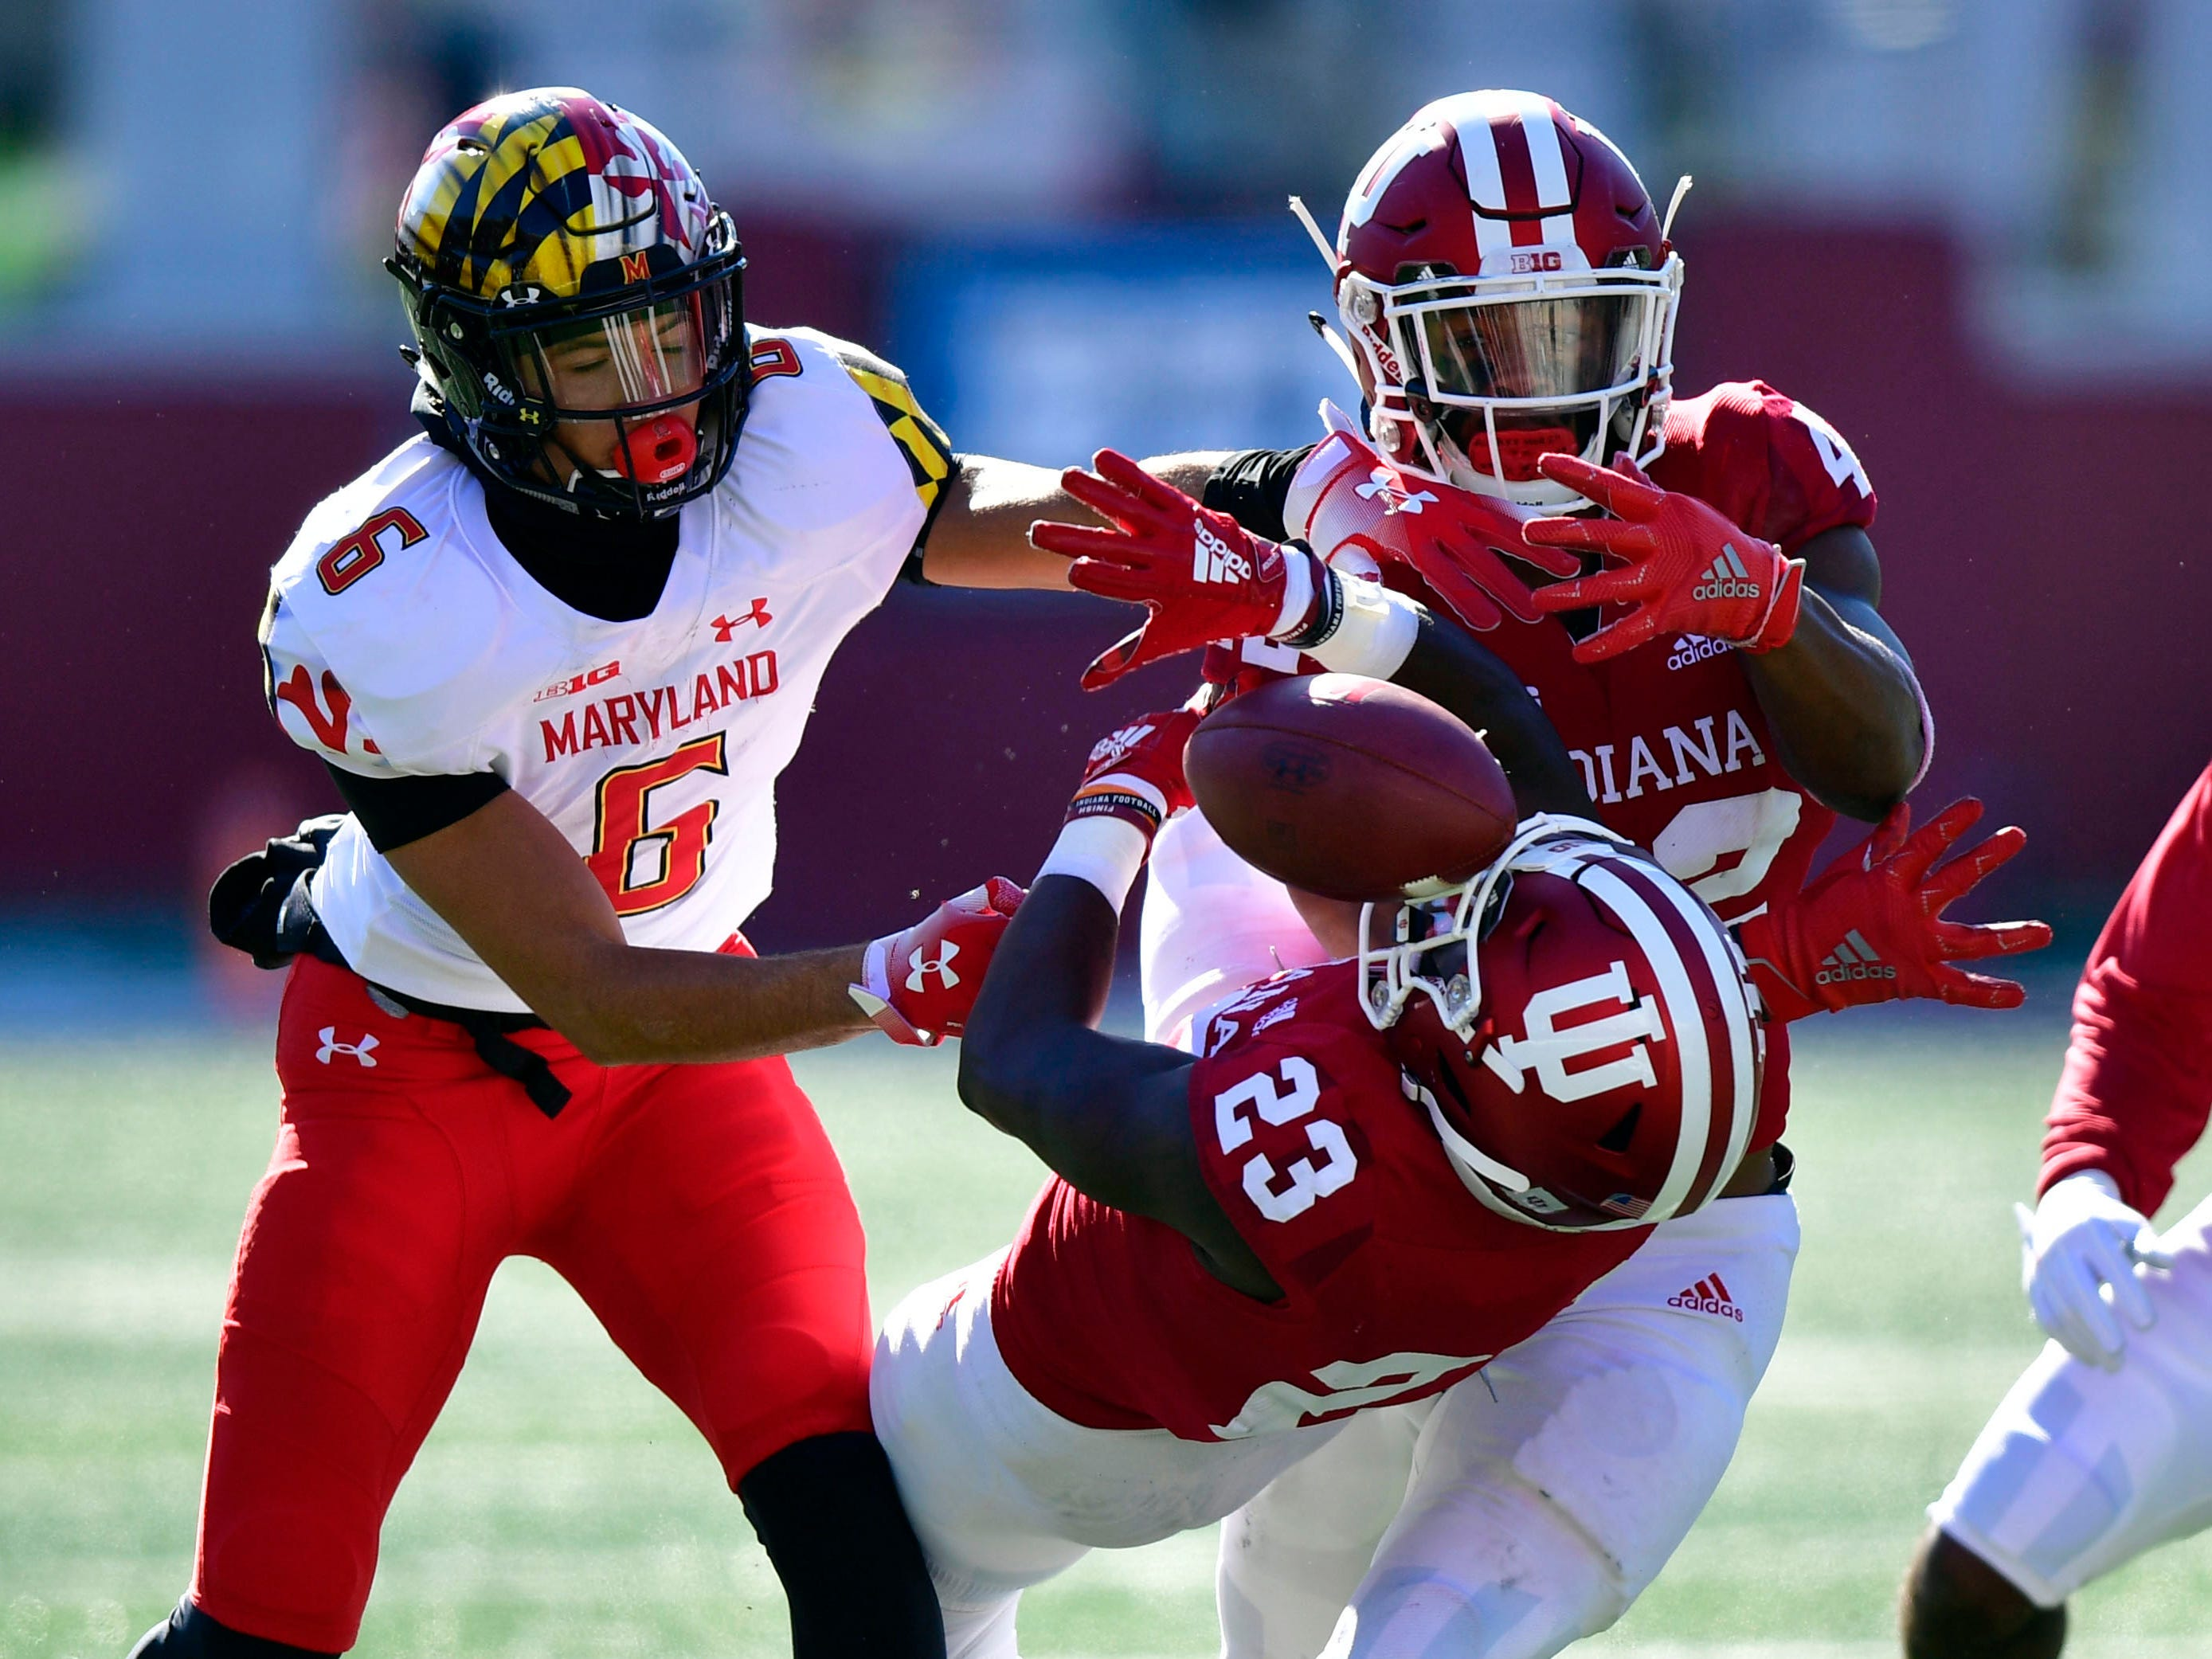 Hoosiers defensive back Jaylin Williams (23) and  Indiana Hoosiers defensive back Marcelino Ball (42) attempt to intercept a ball intended for Maryland Terrapins defensive back Chigozie Onyekwere (6) during the fist half of the the game at Memorial Stadium .